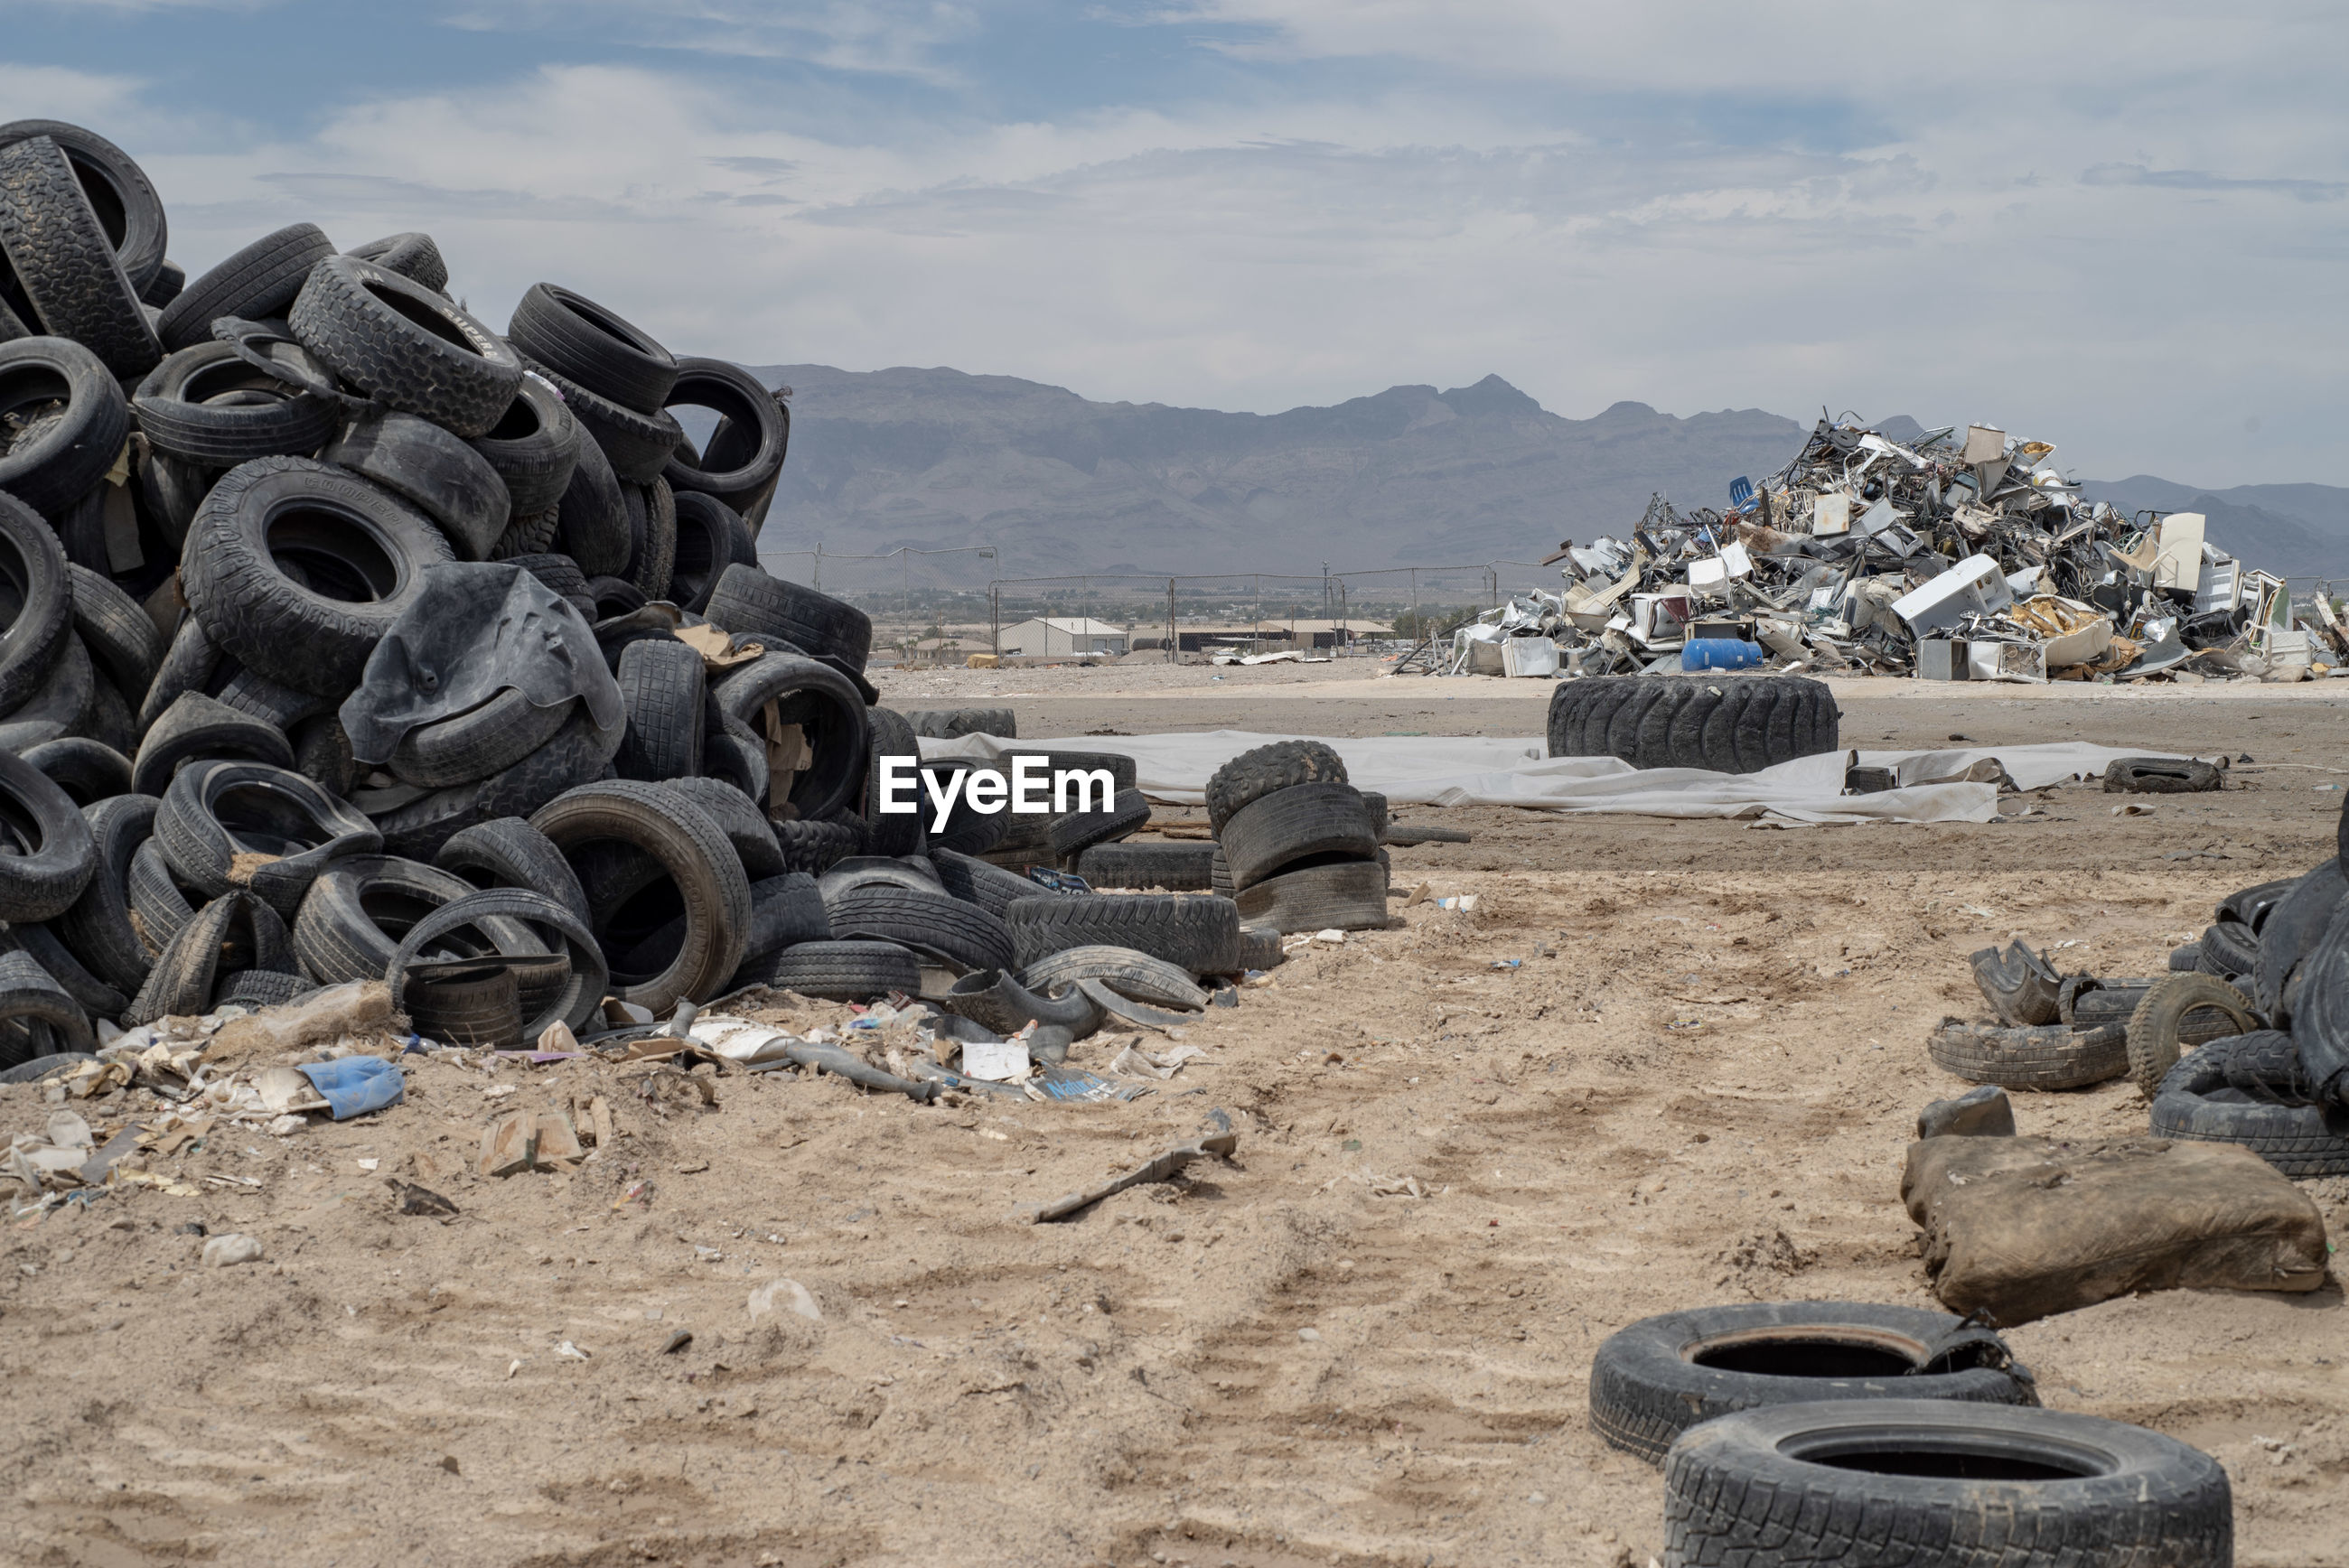 Piles of worn out tires in mojave desert landscape with mountain range in background